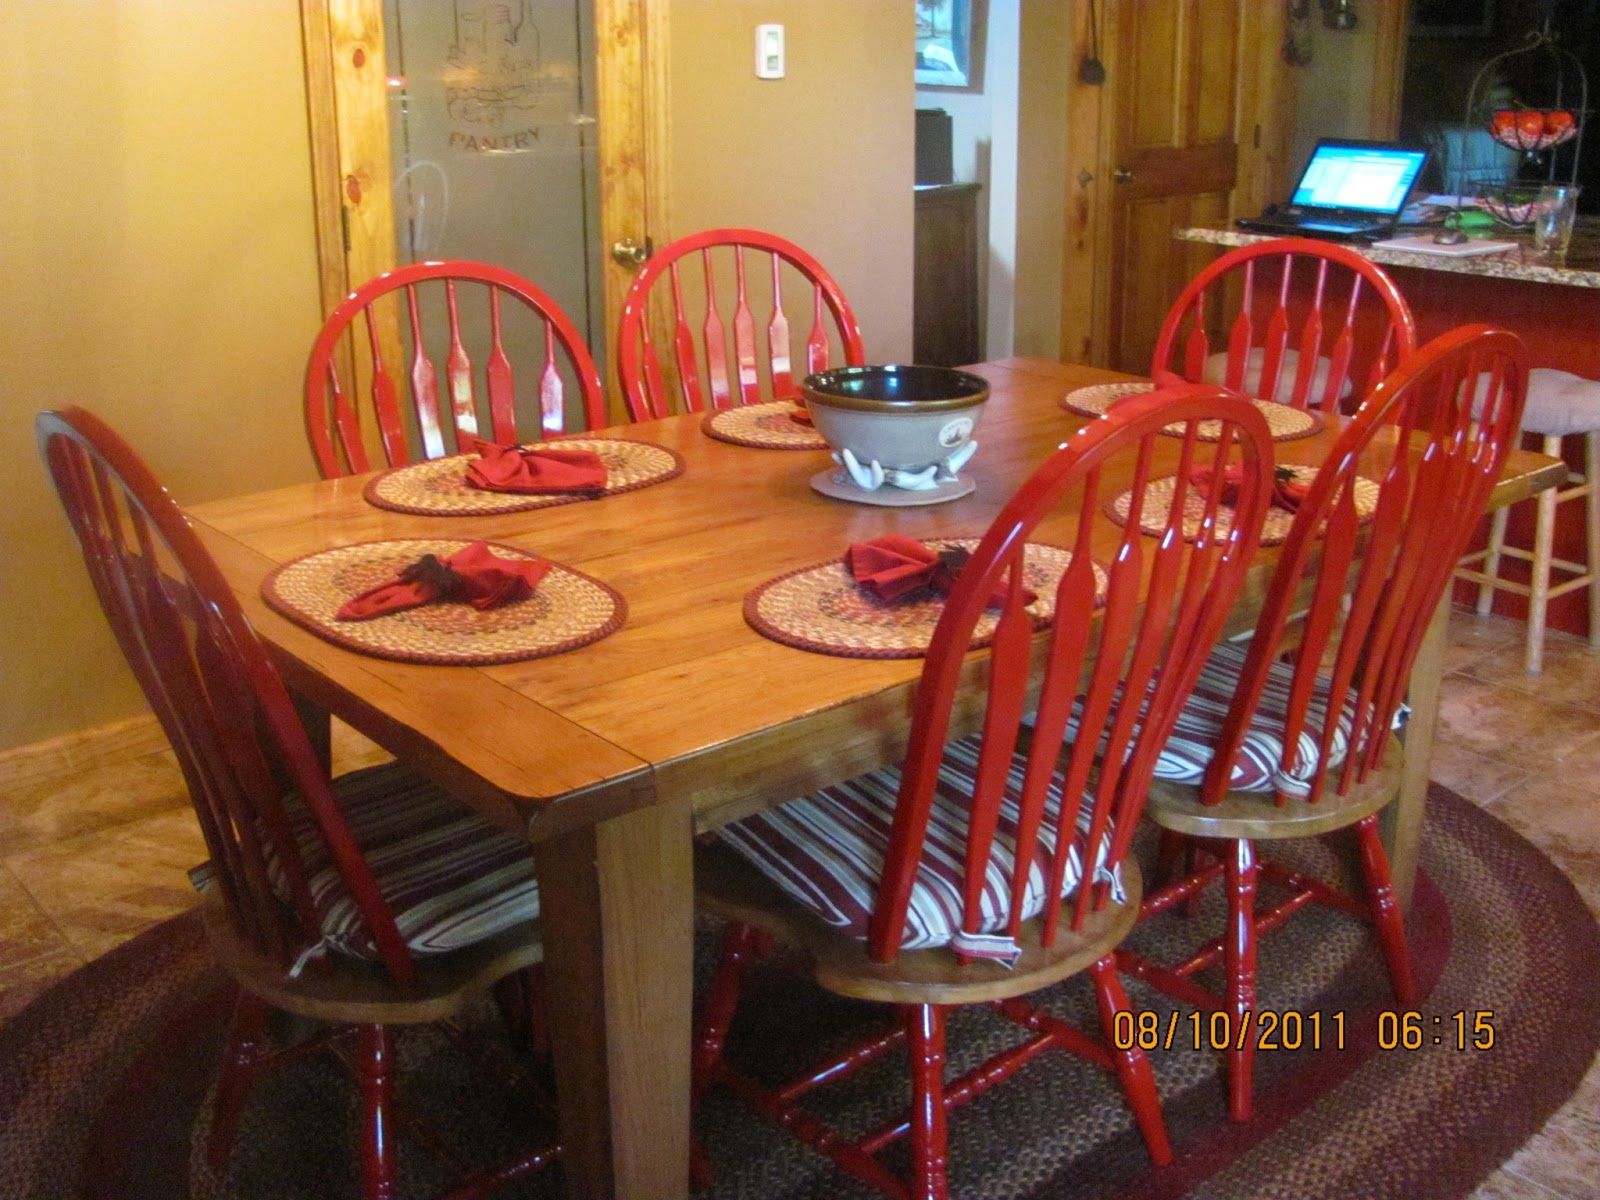 Living the log home dream newly painted kitchen chairs for Painted kitchen chairs